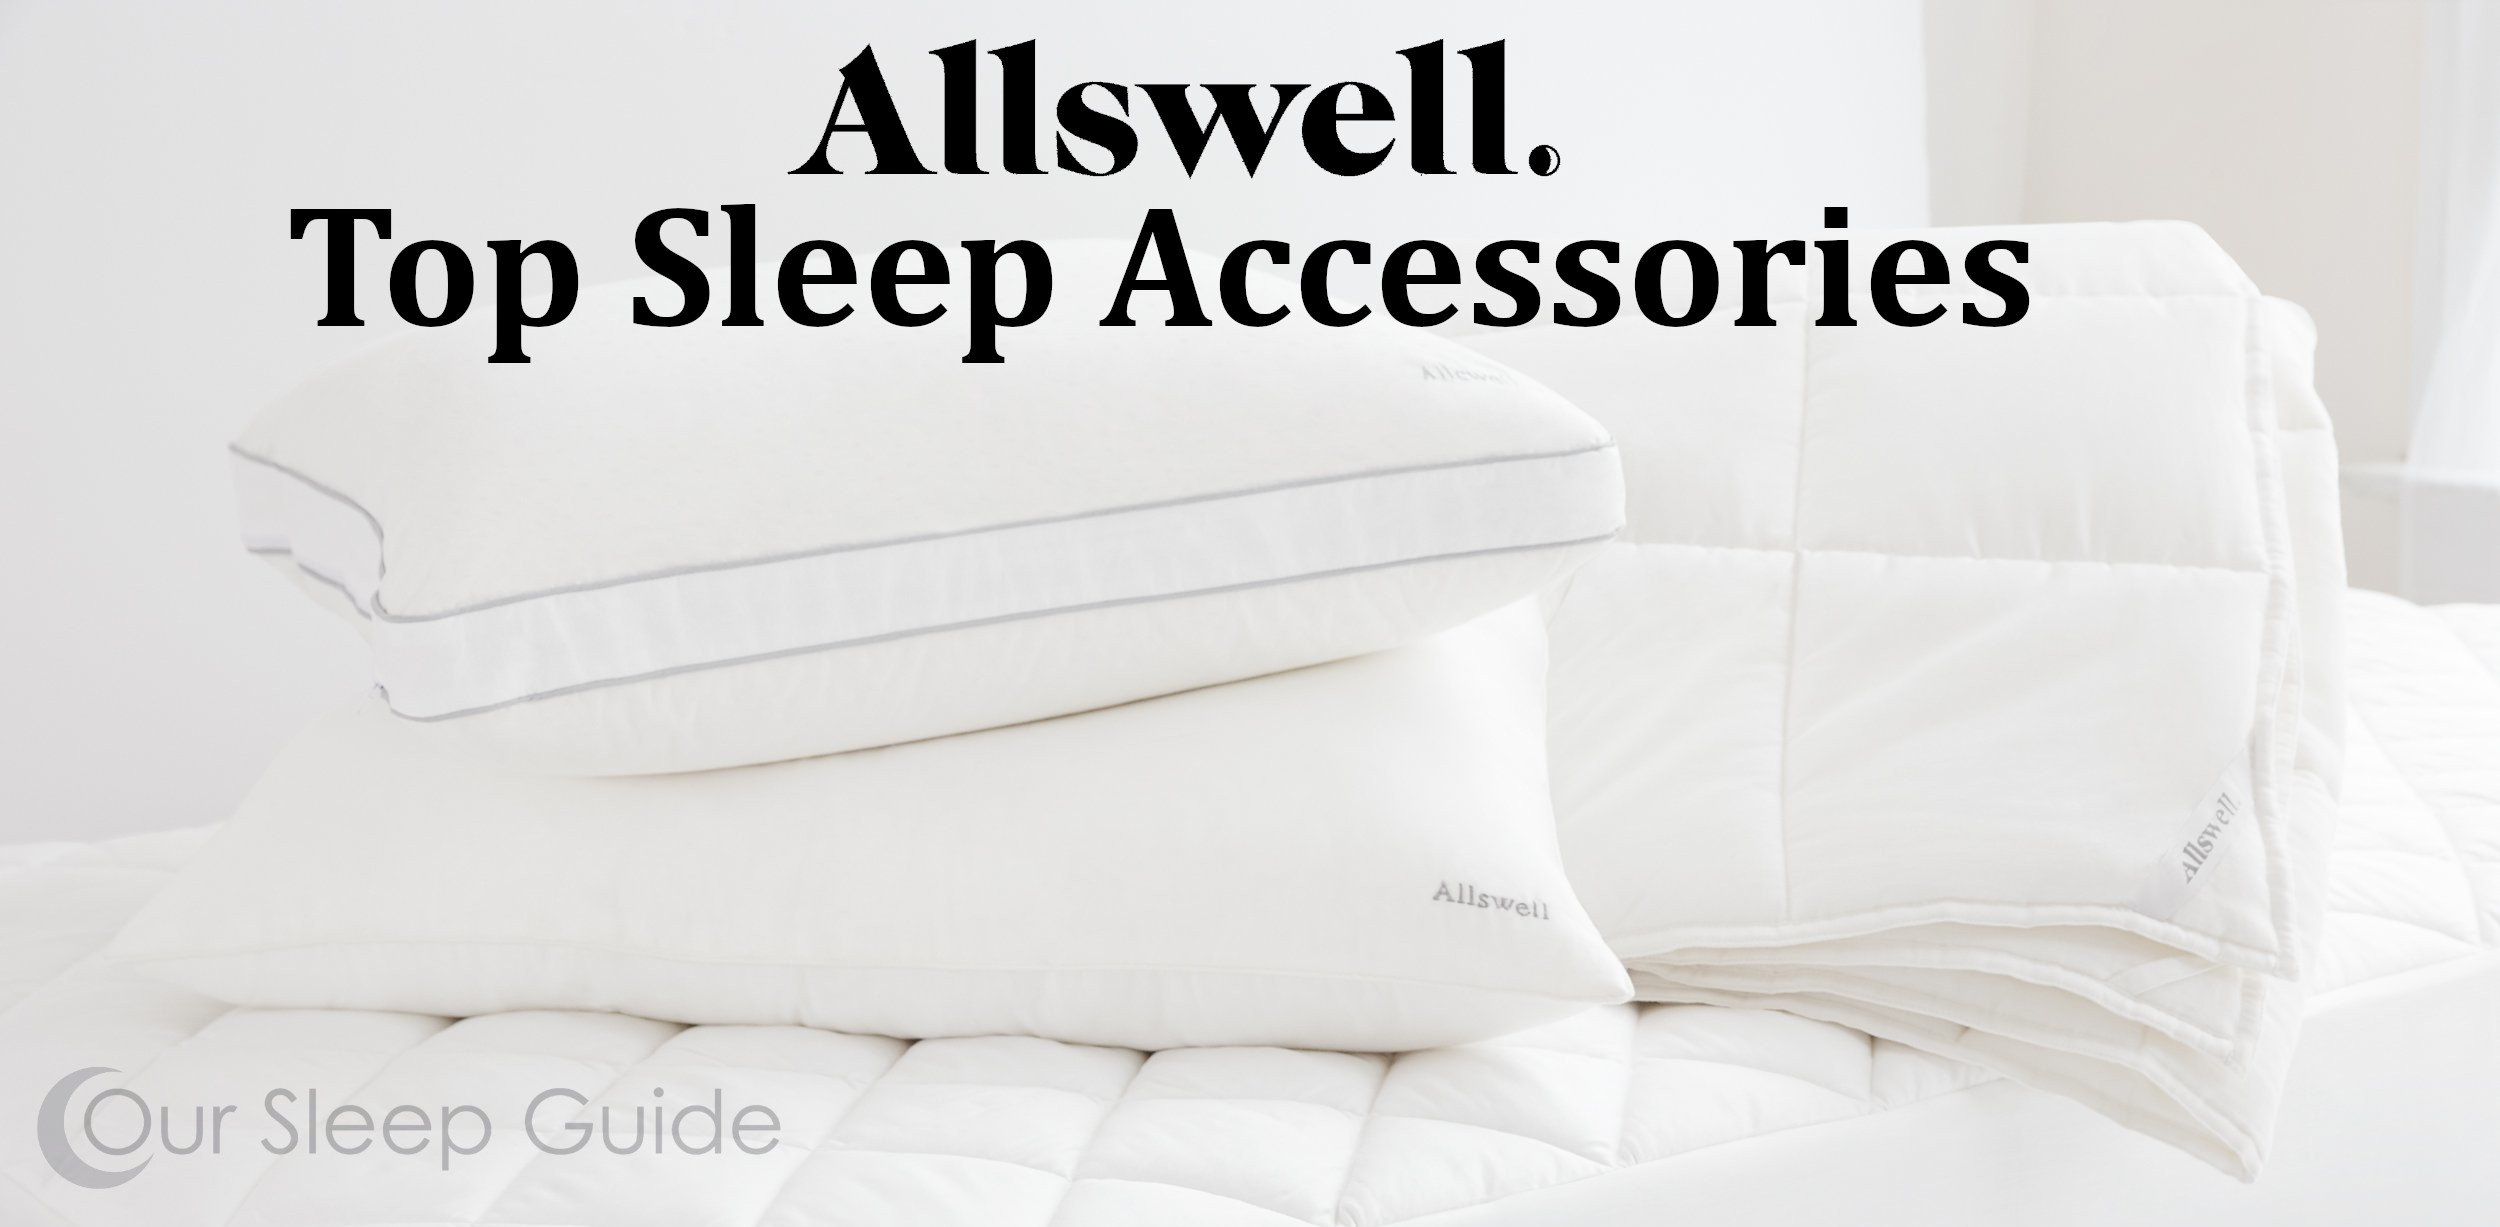 allswell sleep accessories review